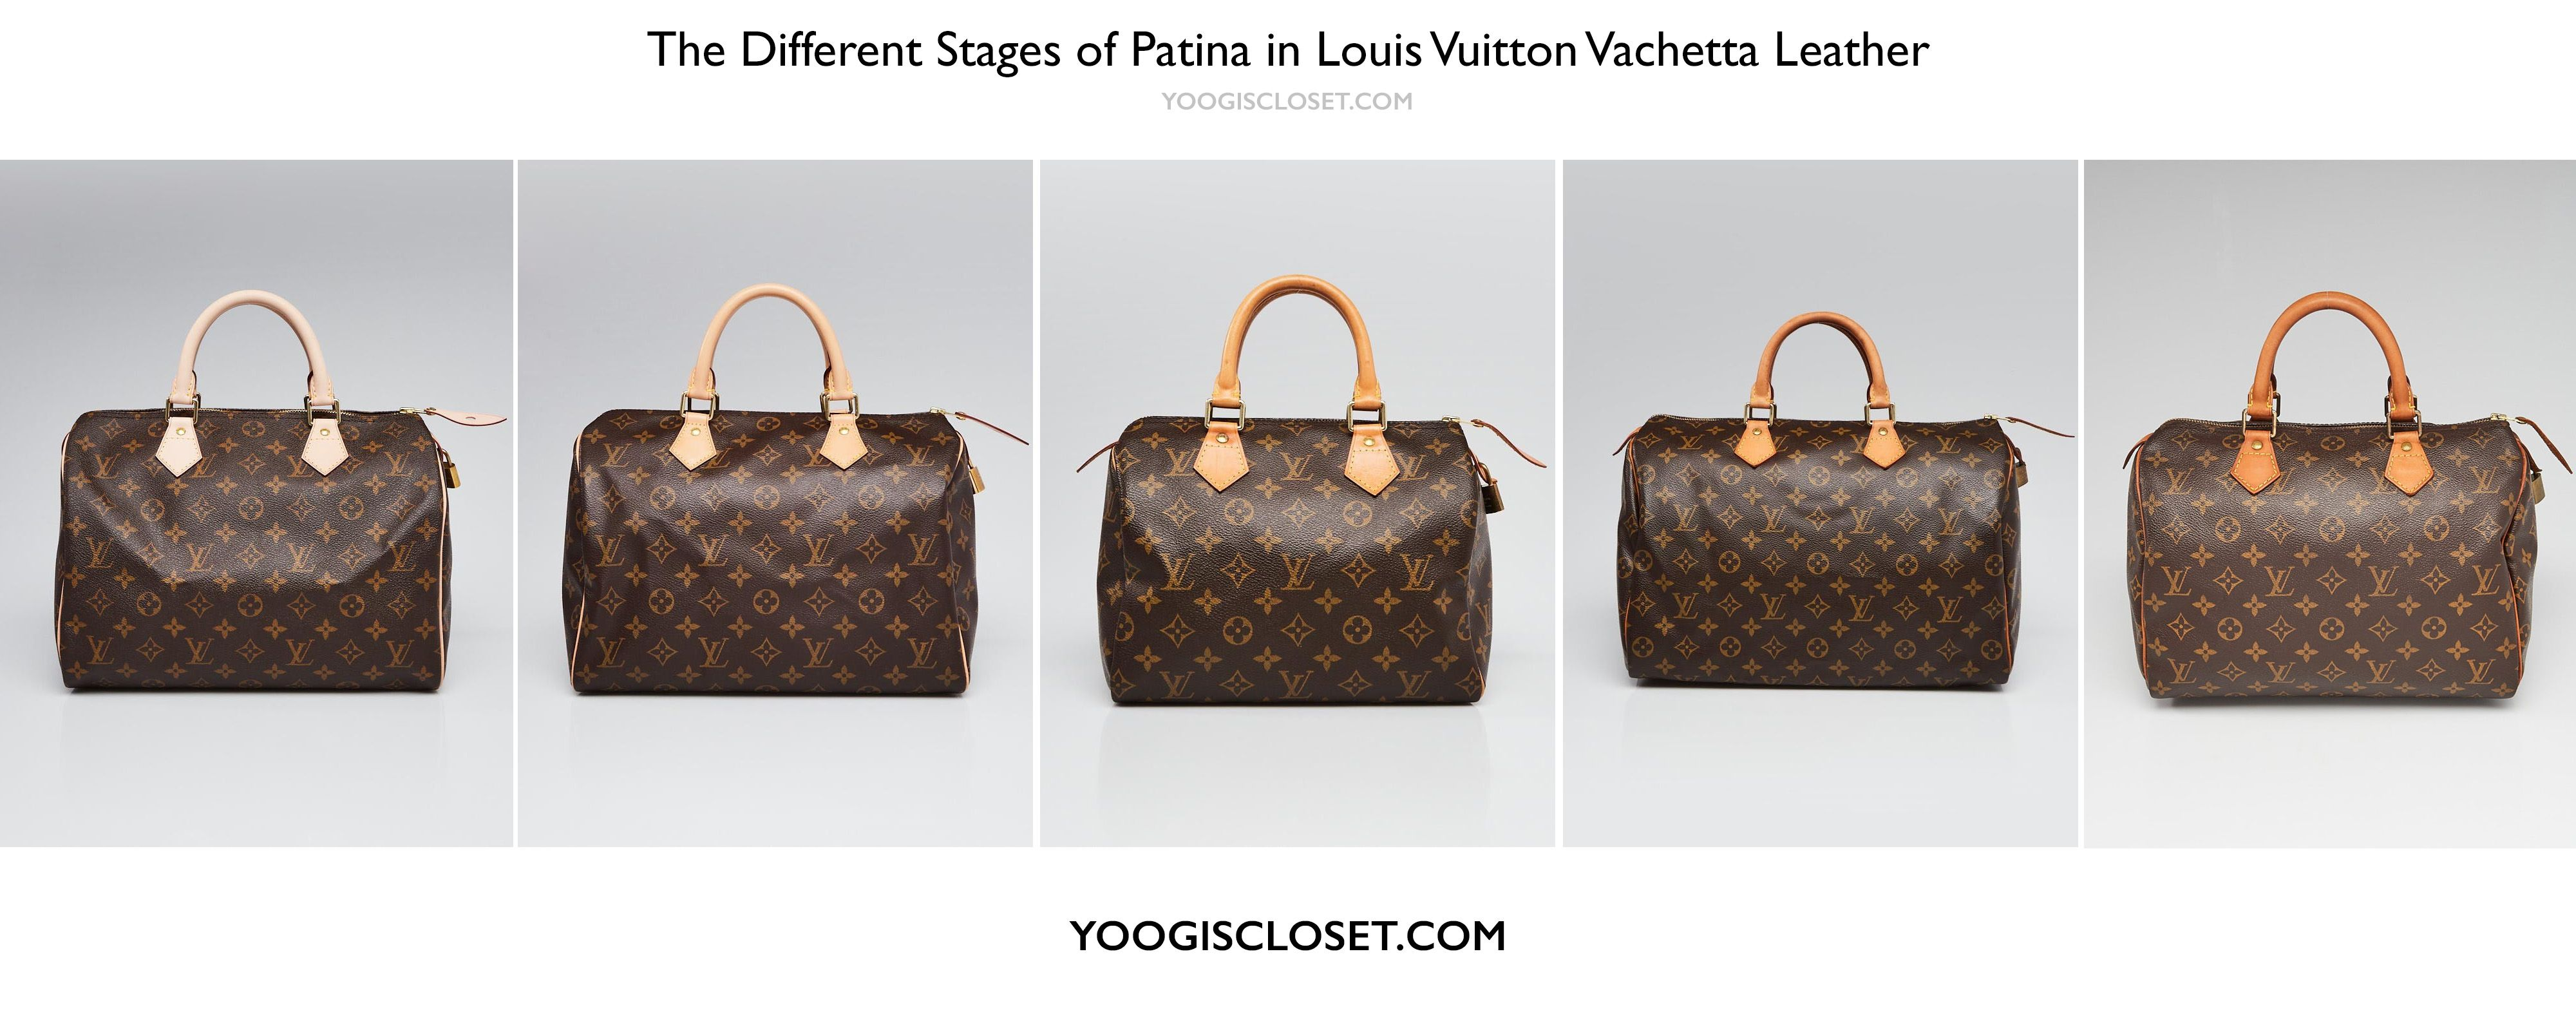 9a04e935a749 Louis Vuitton Vachetta Leather Patina Stages